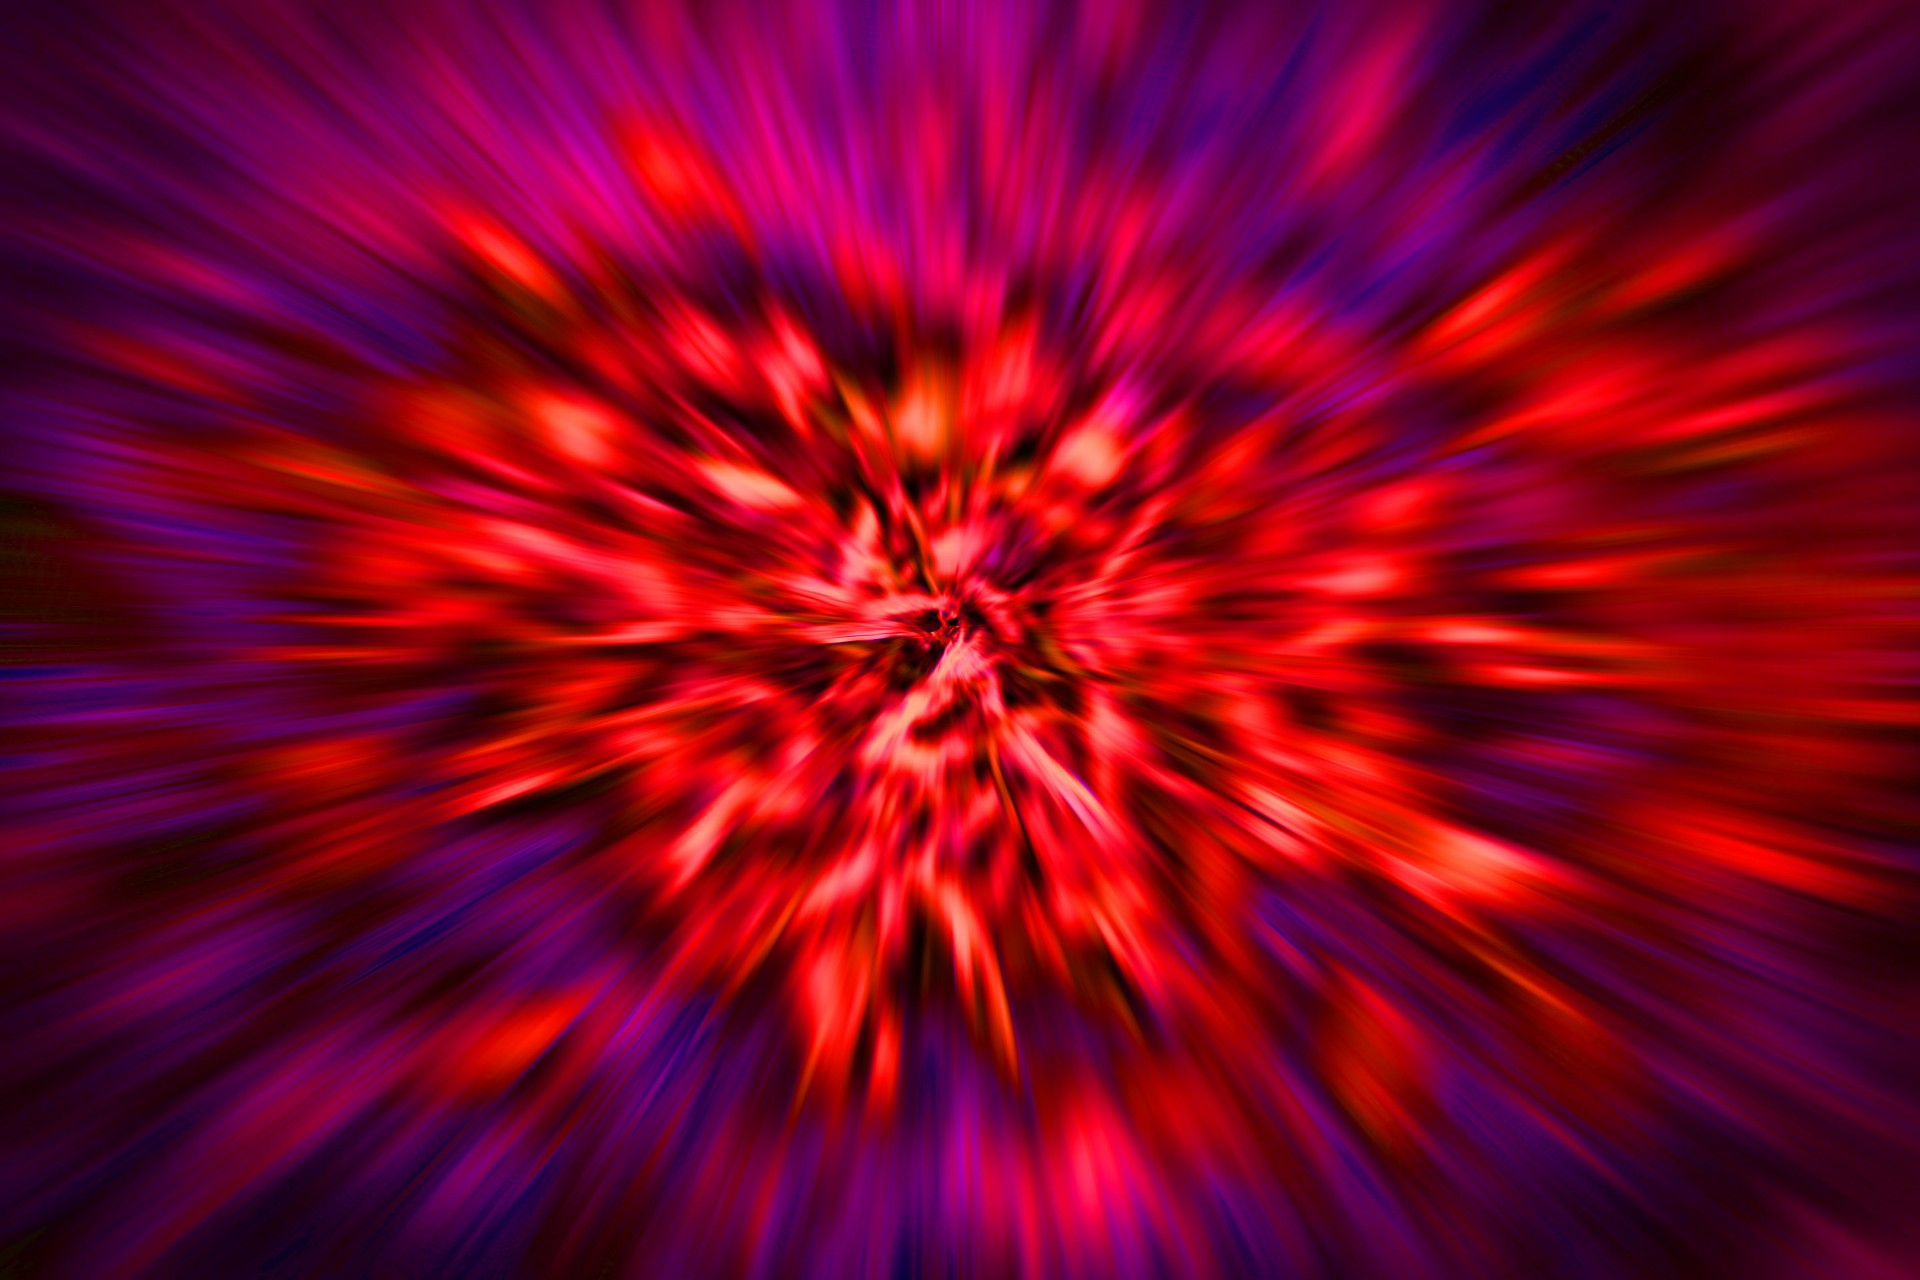 purple-and-red-zoom-burst-effect